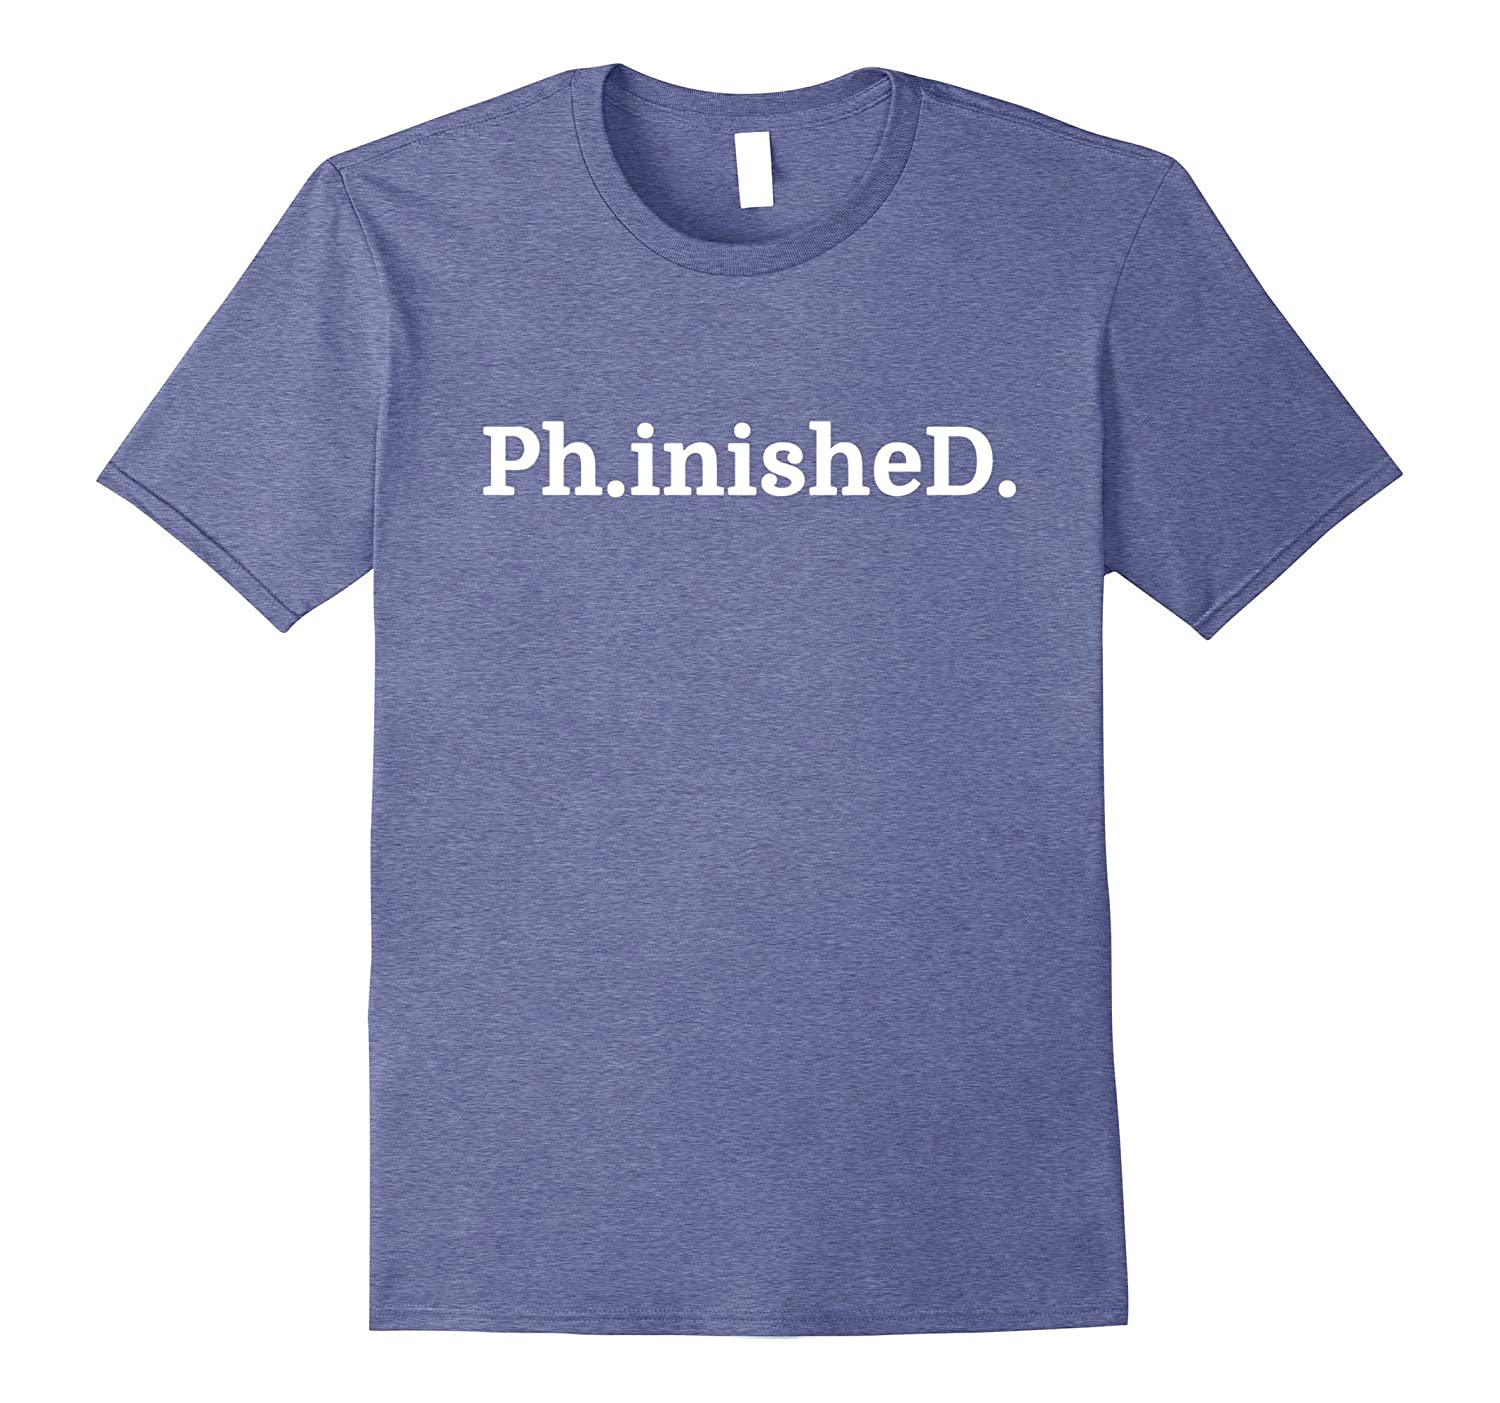 eedac32d3 Funny PhD Graduate Gifts PhinisheD Doctorate T-shirt Mens-ANZ ...